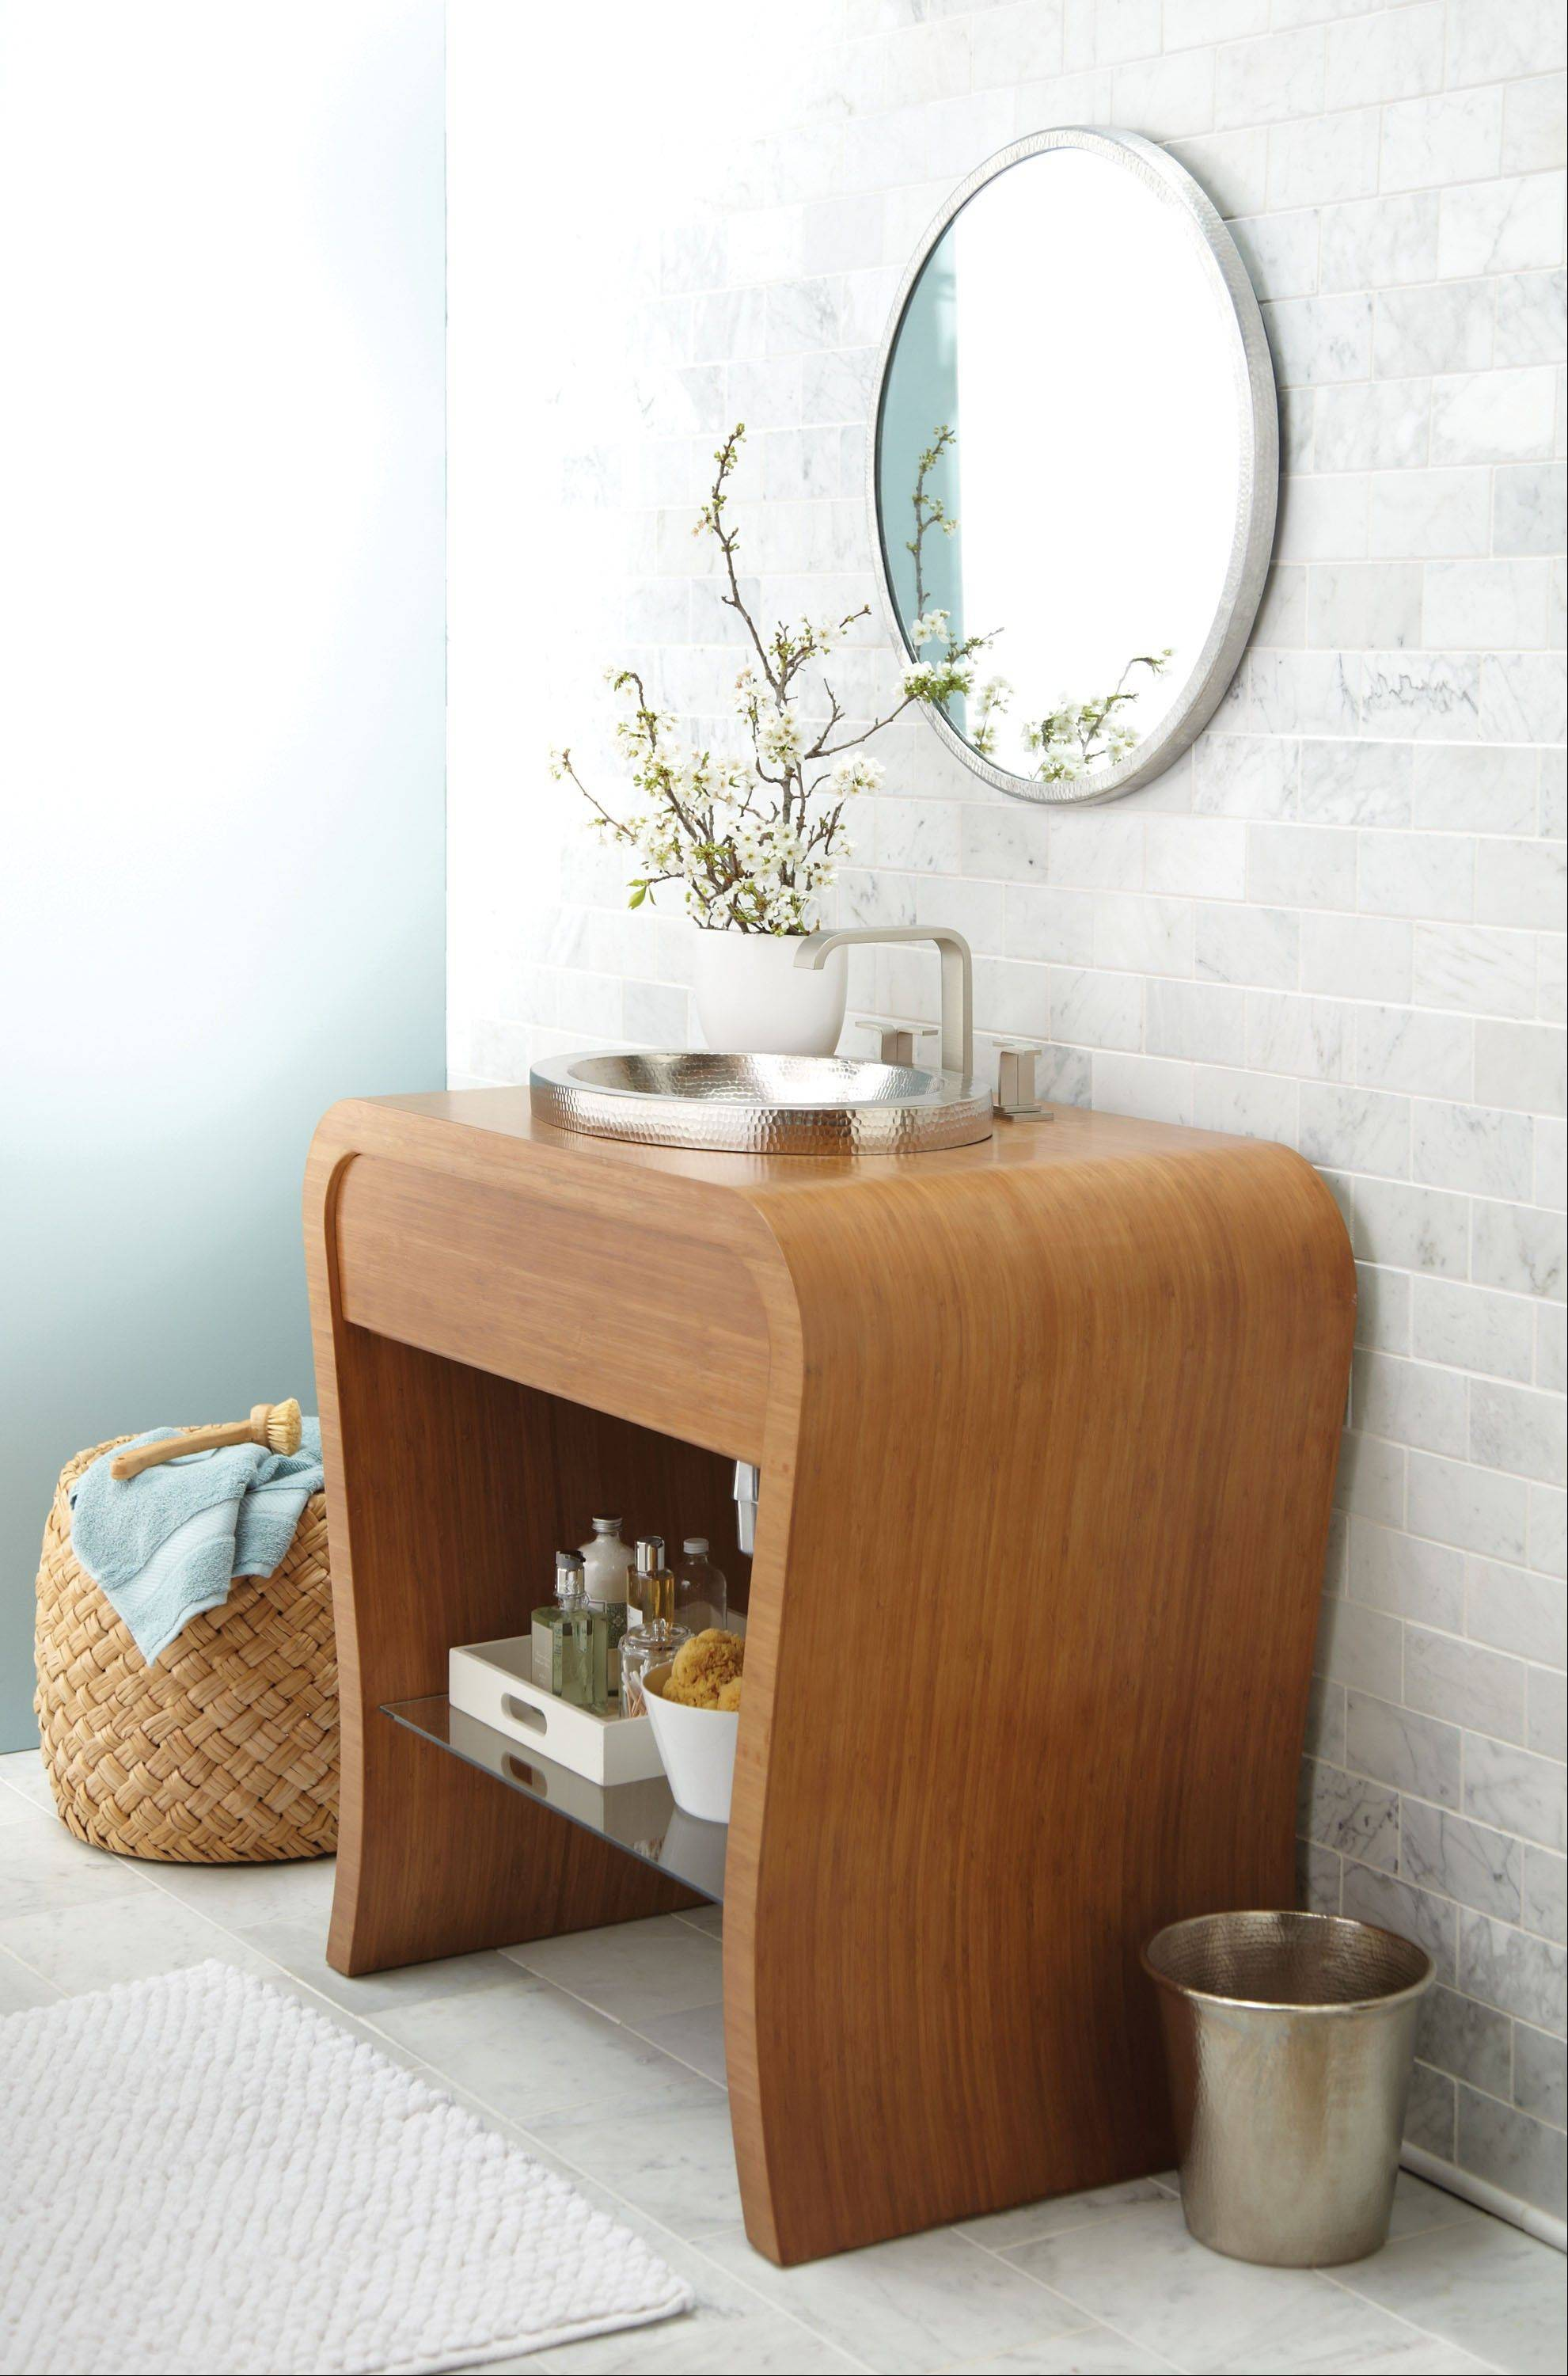 Vessel sinks sit on top of the counter and come in all materials and shapes. This Native Trails vanity features a stainless steel vessel that contrasts with the bamboo base with glass shelf.